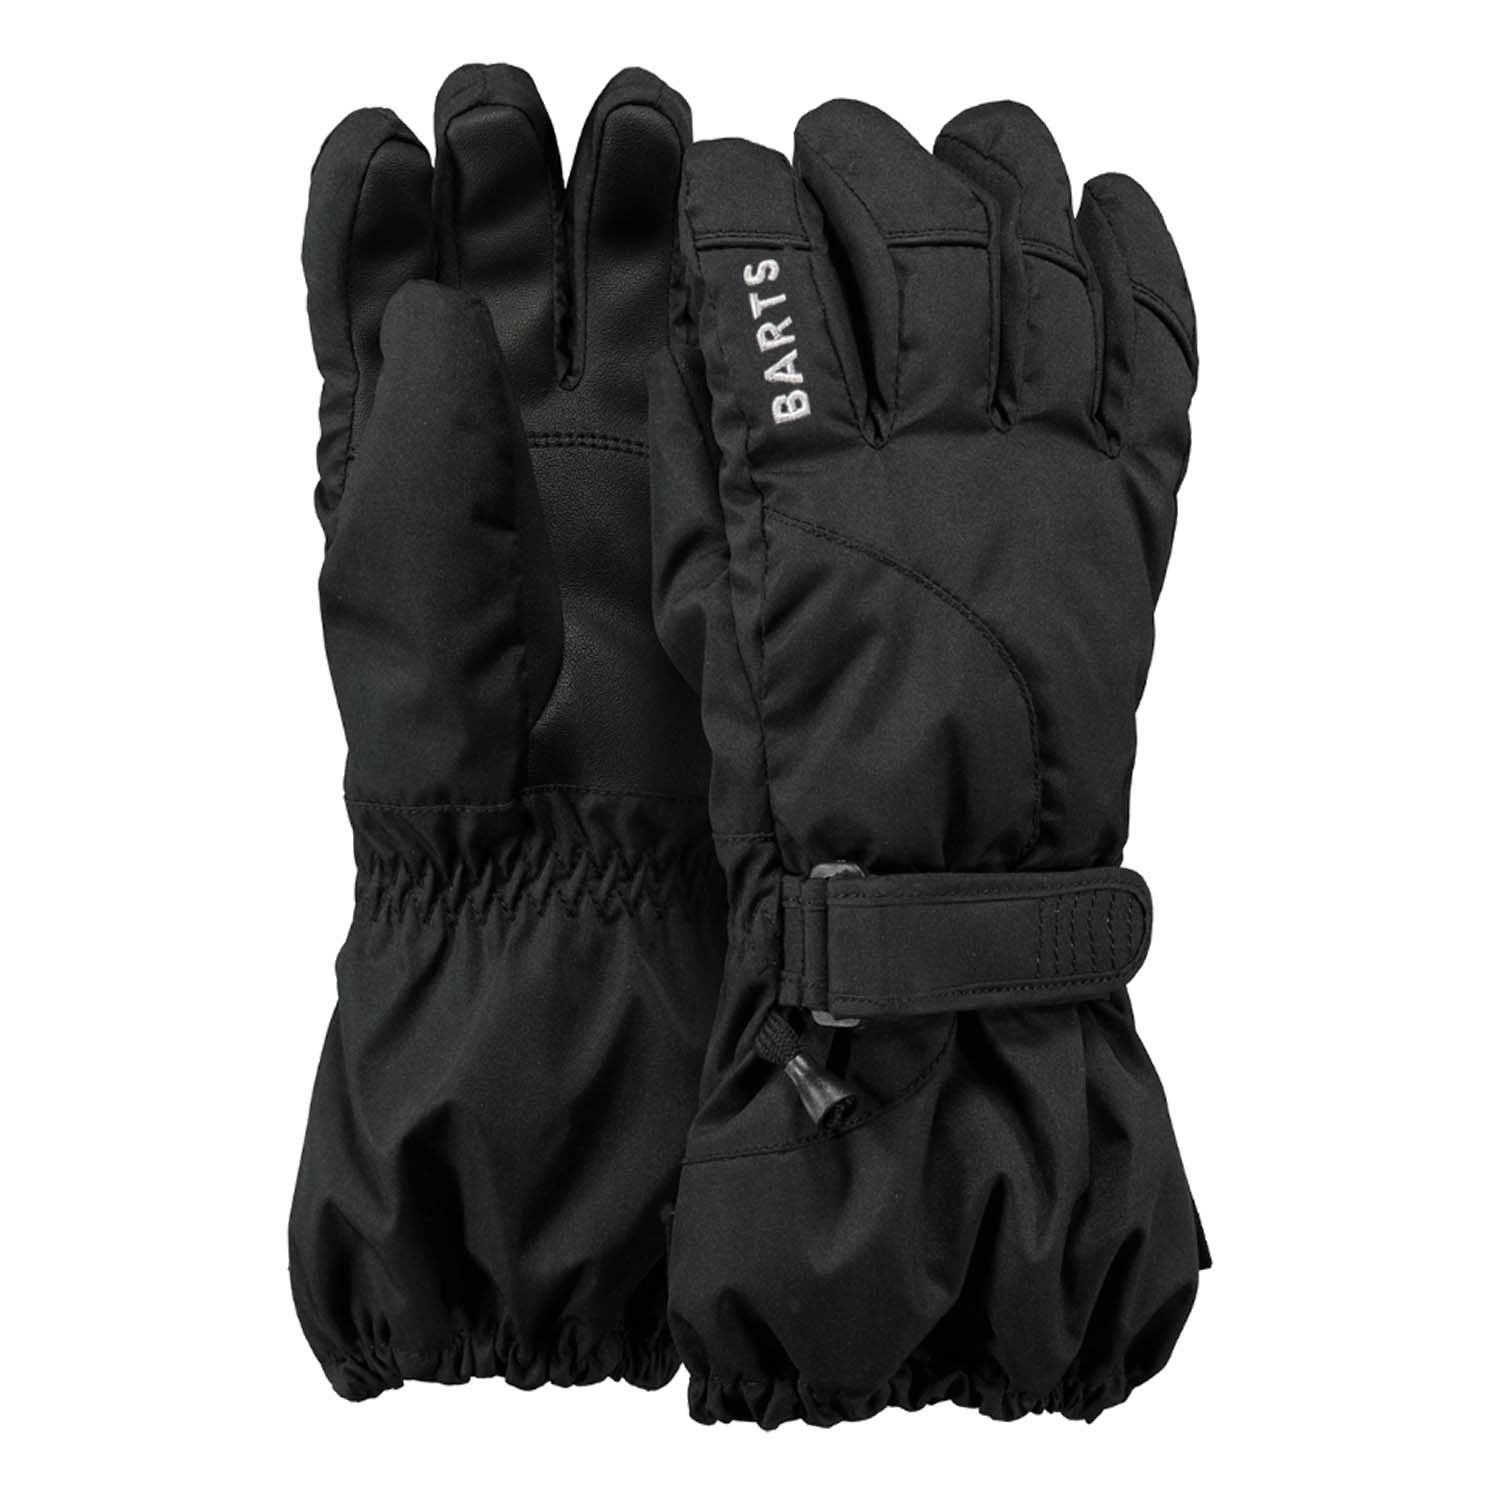 Barts Tec Gloves Black 2020